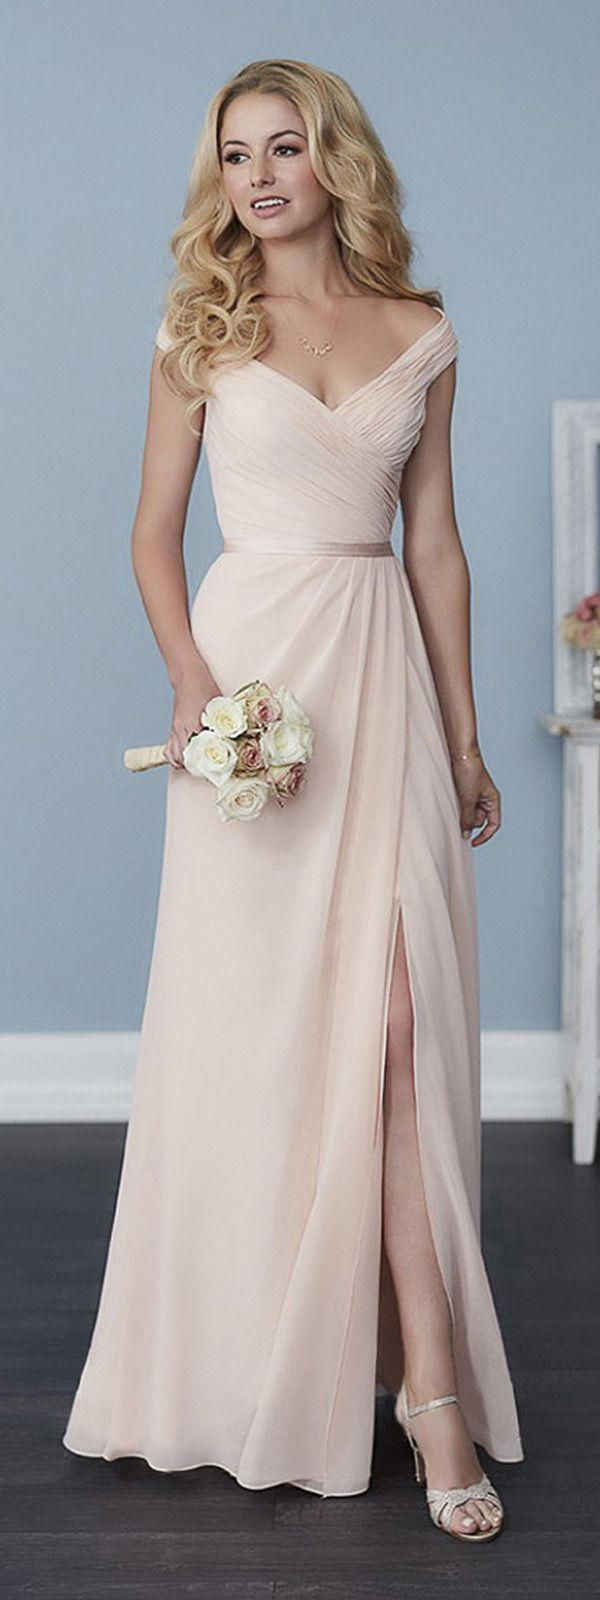 Elegant Chiffon Off-the-shoulder Neckline A-line Bridesmaid Dresses With  Belt   Slit 398cf7a56a3d